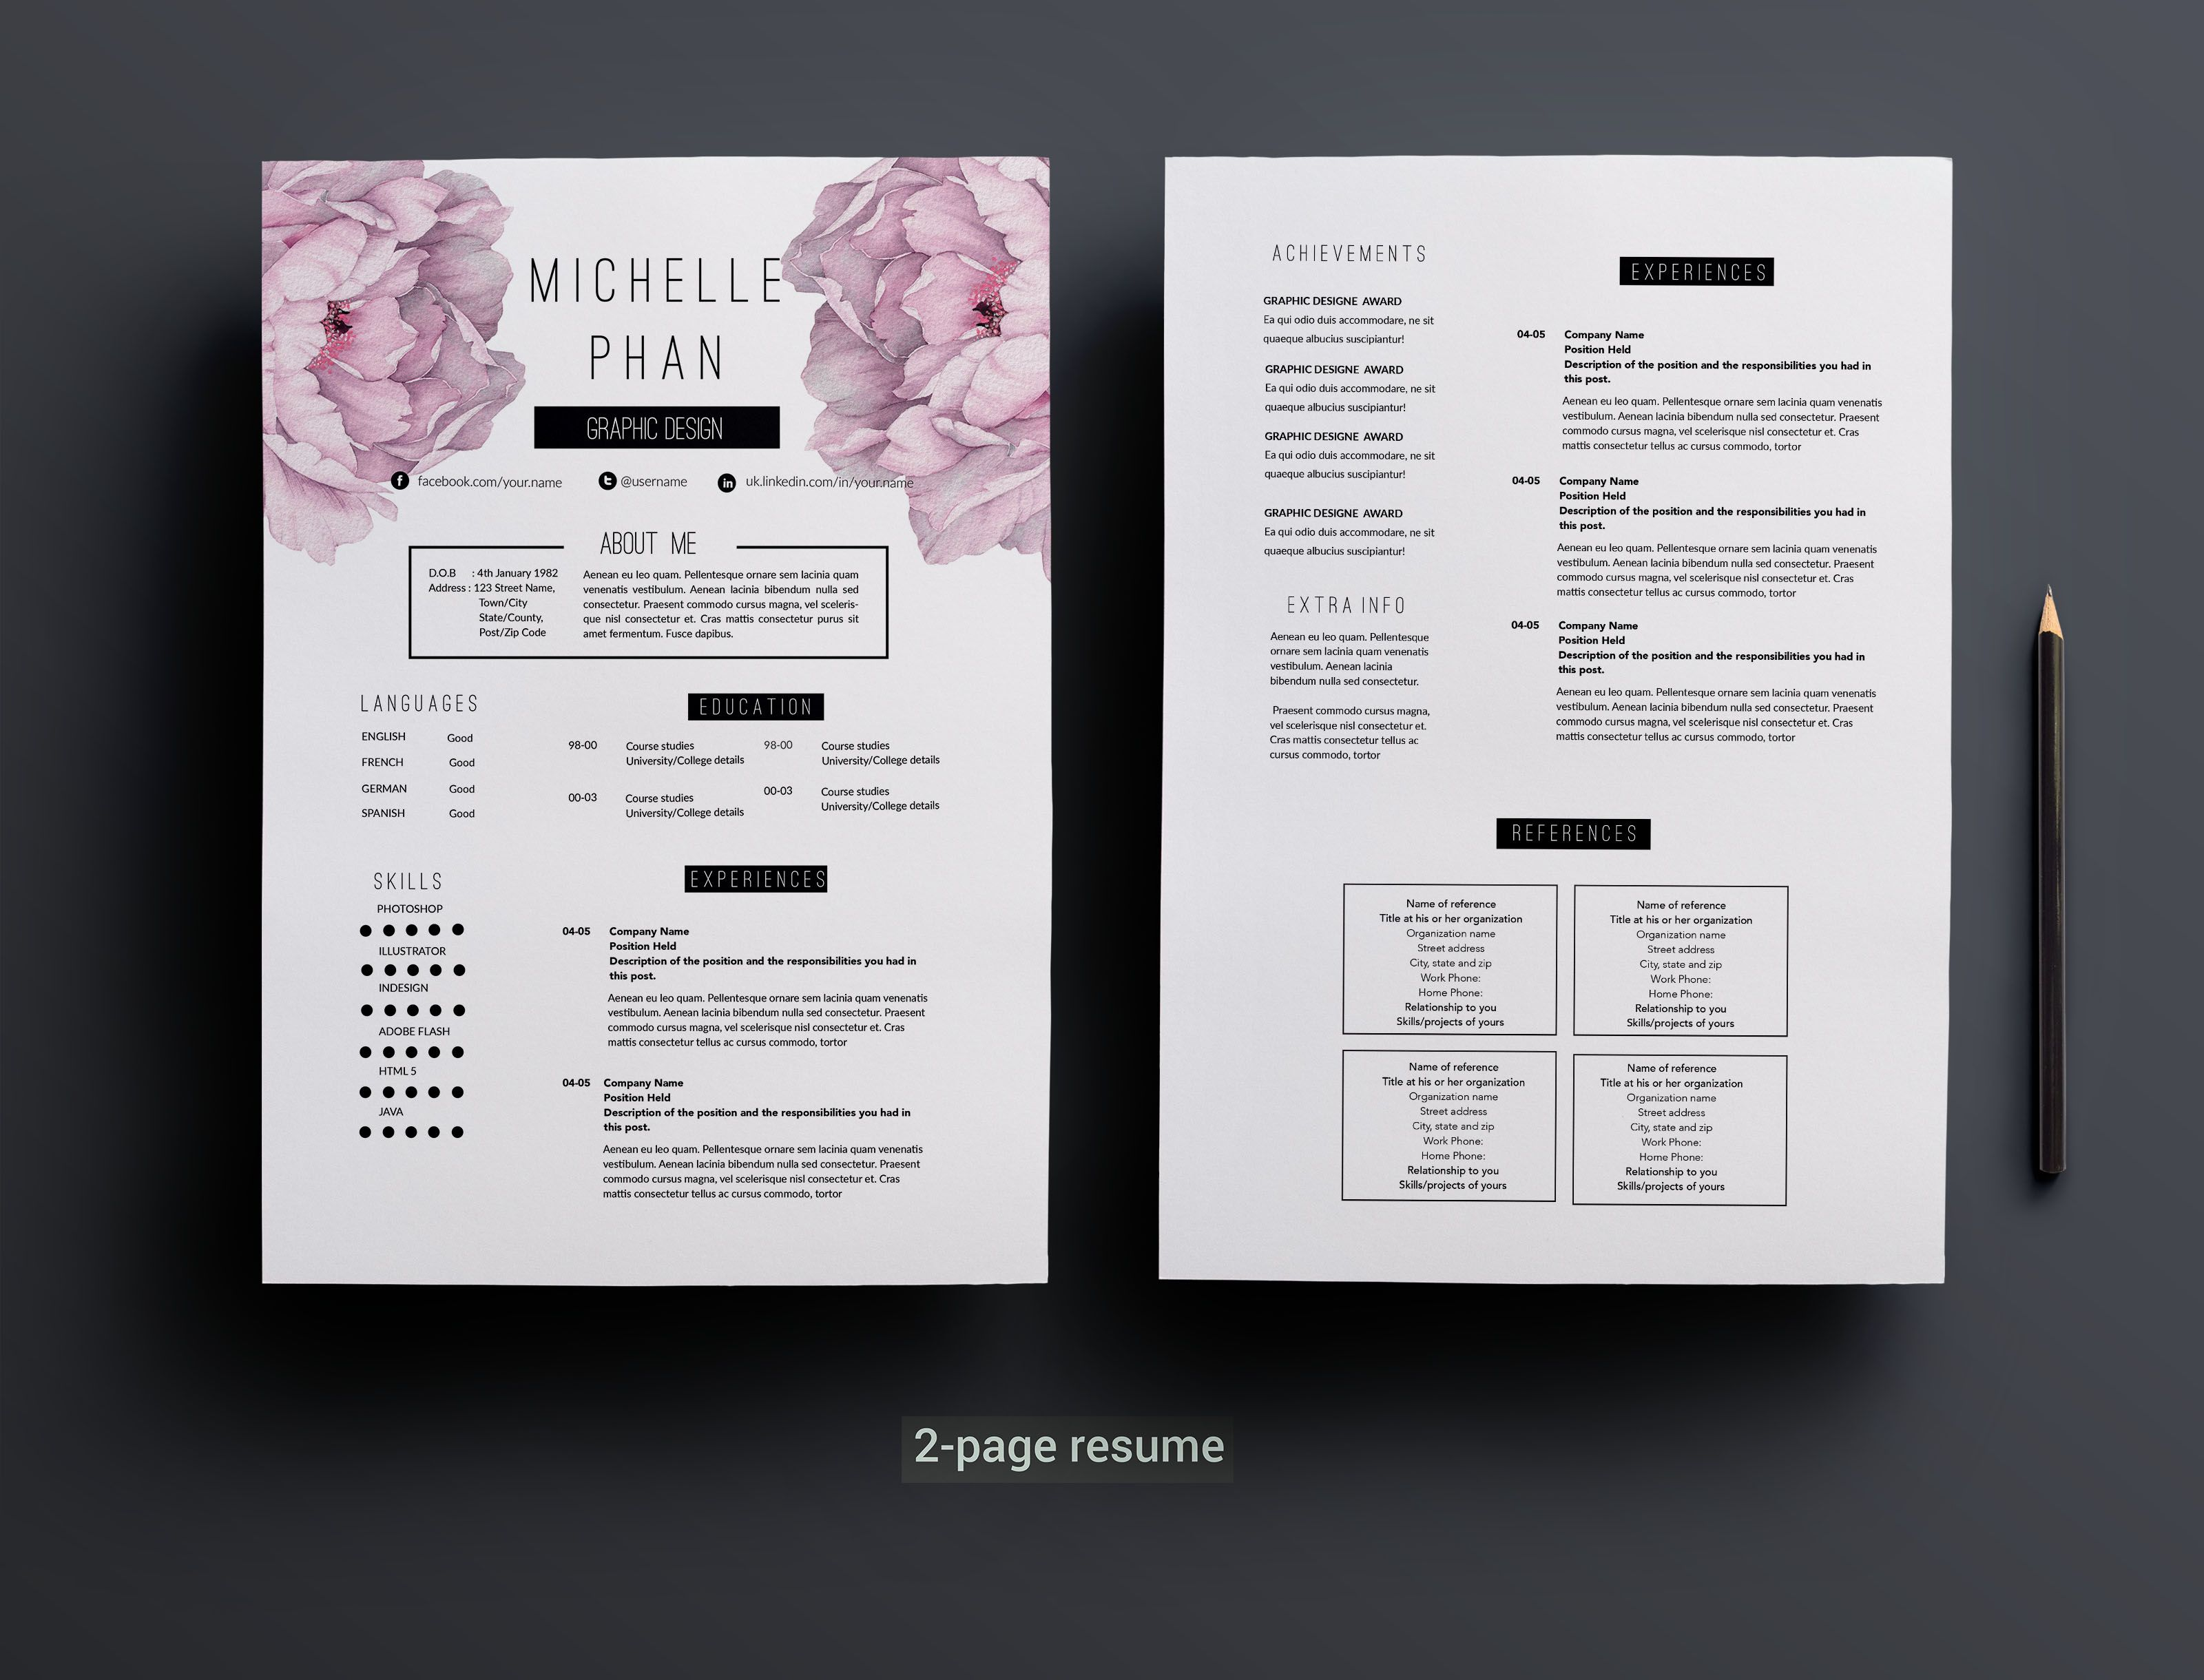 2 page resume template +cover letter by Chic templates on ...